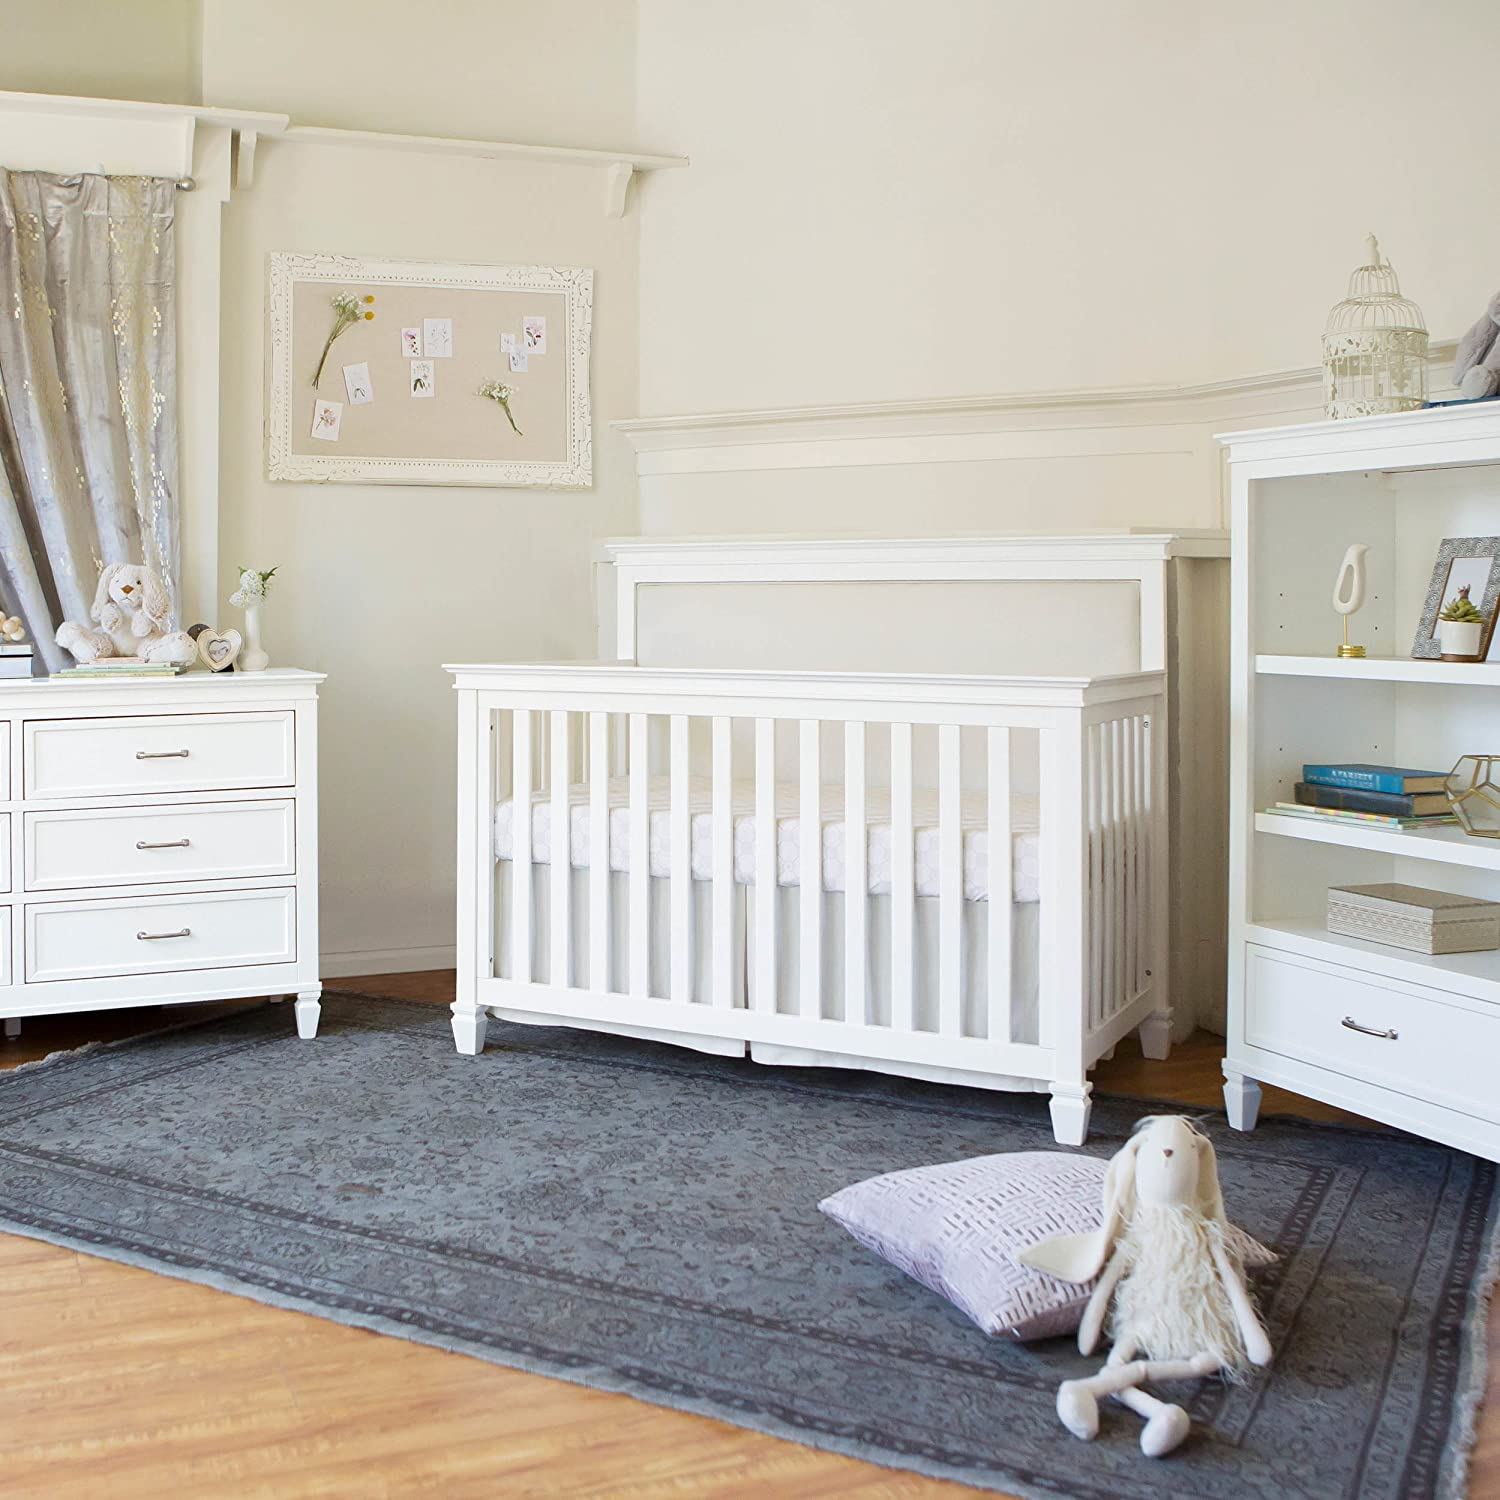 Million Dollar Baby Darlington 4-in-1 Convertible Crib, Warm White